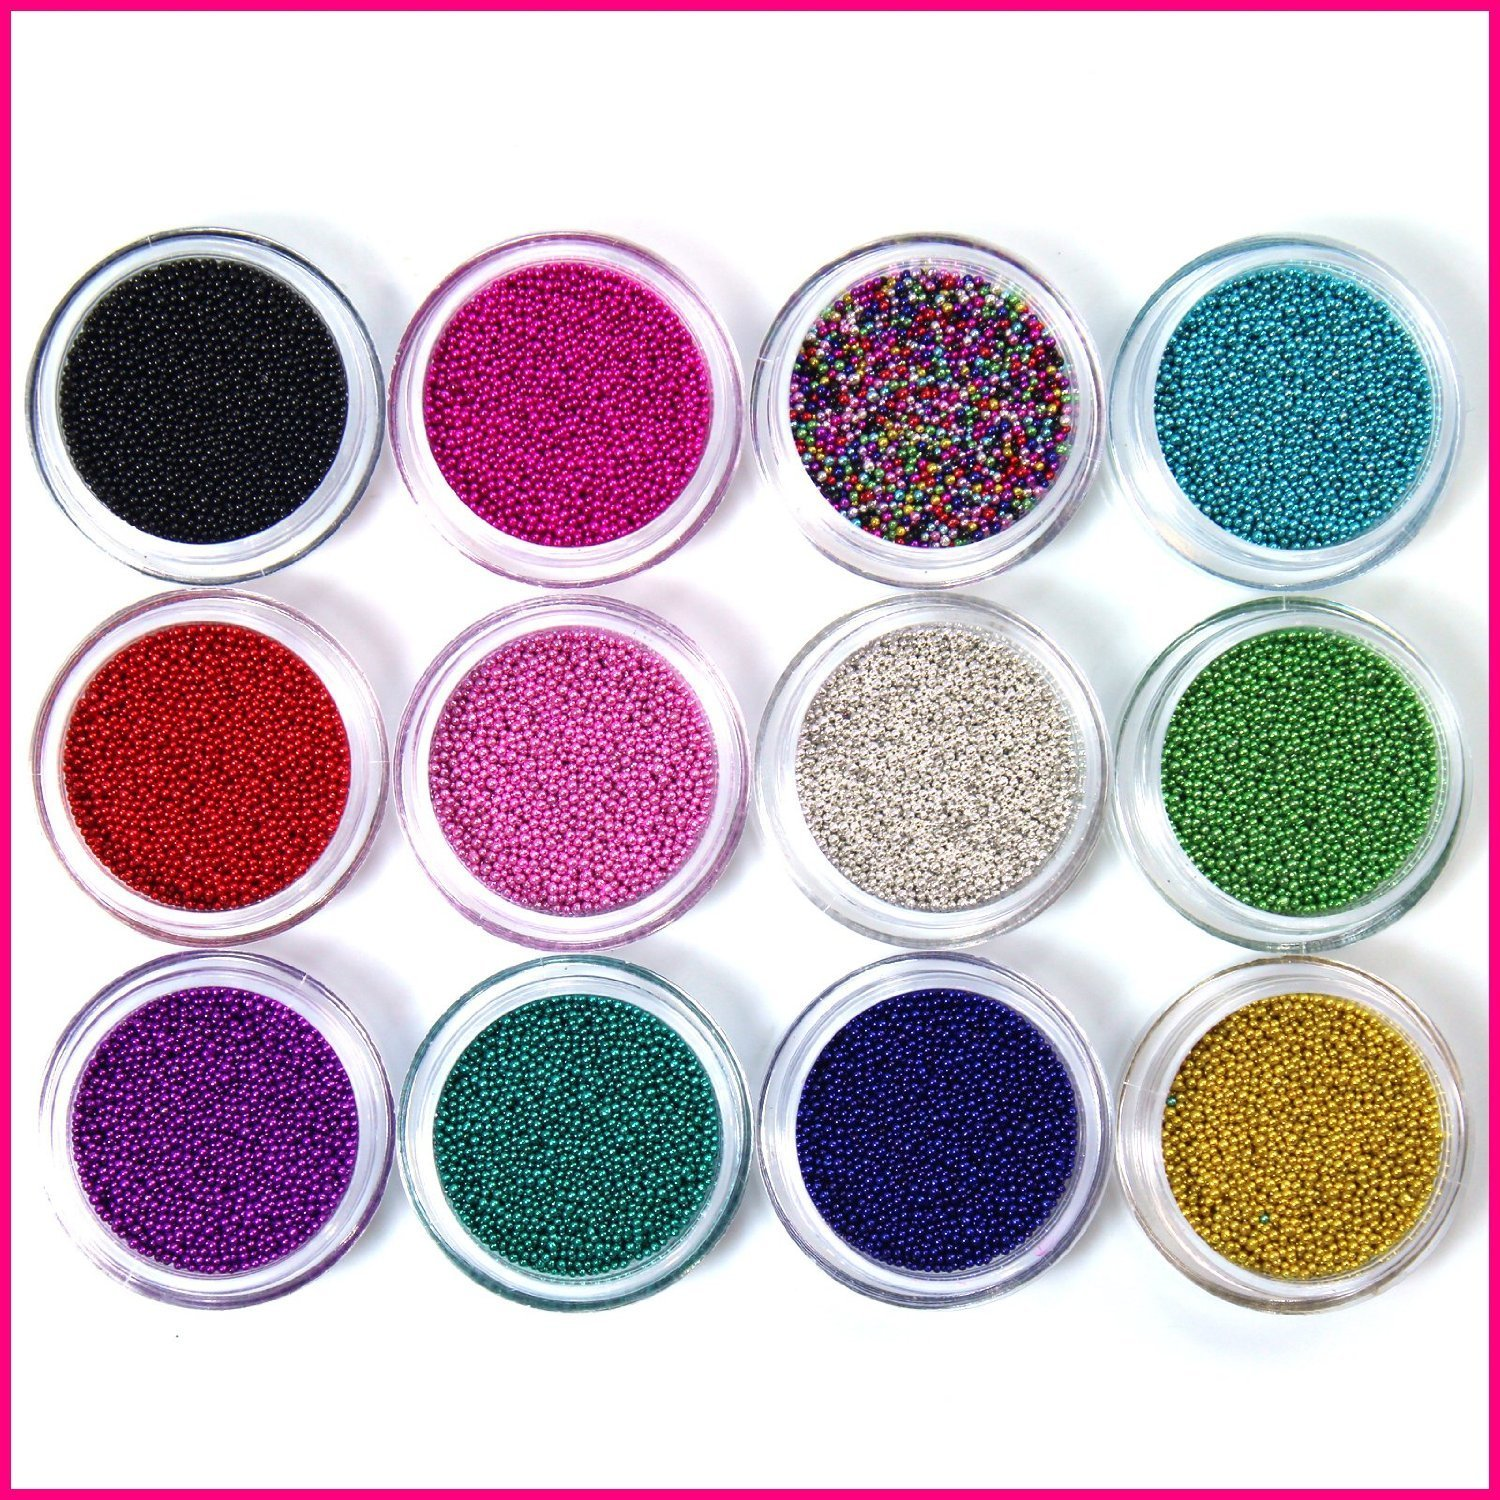 Perfect Summer 12 Colors Nails Polishes Caviar Plastic Beads Pearls Pedicure Manicure DIY Nails Art Decoration Designs Tools Sets